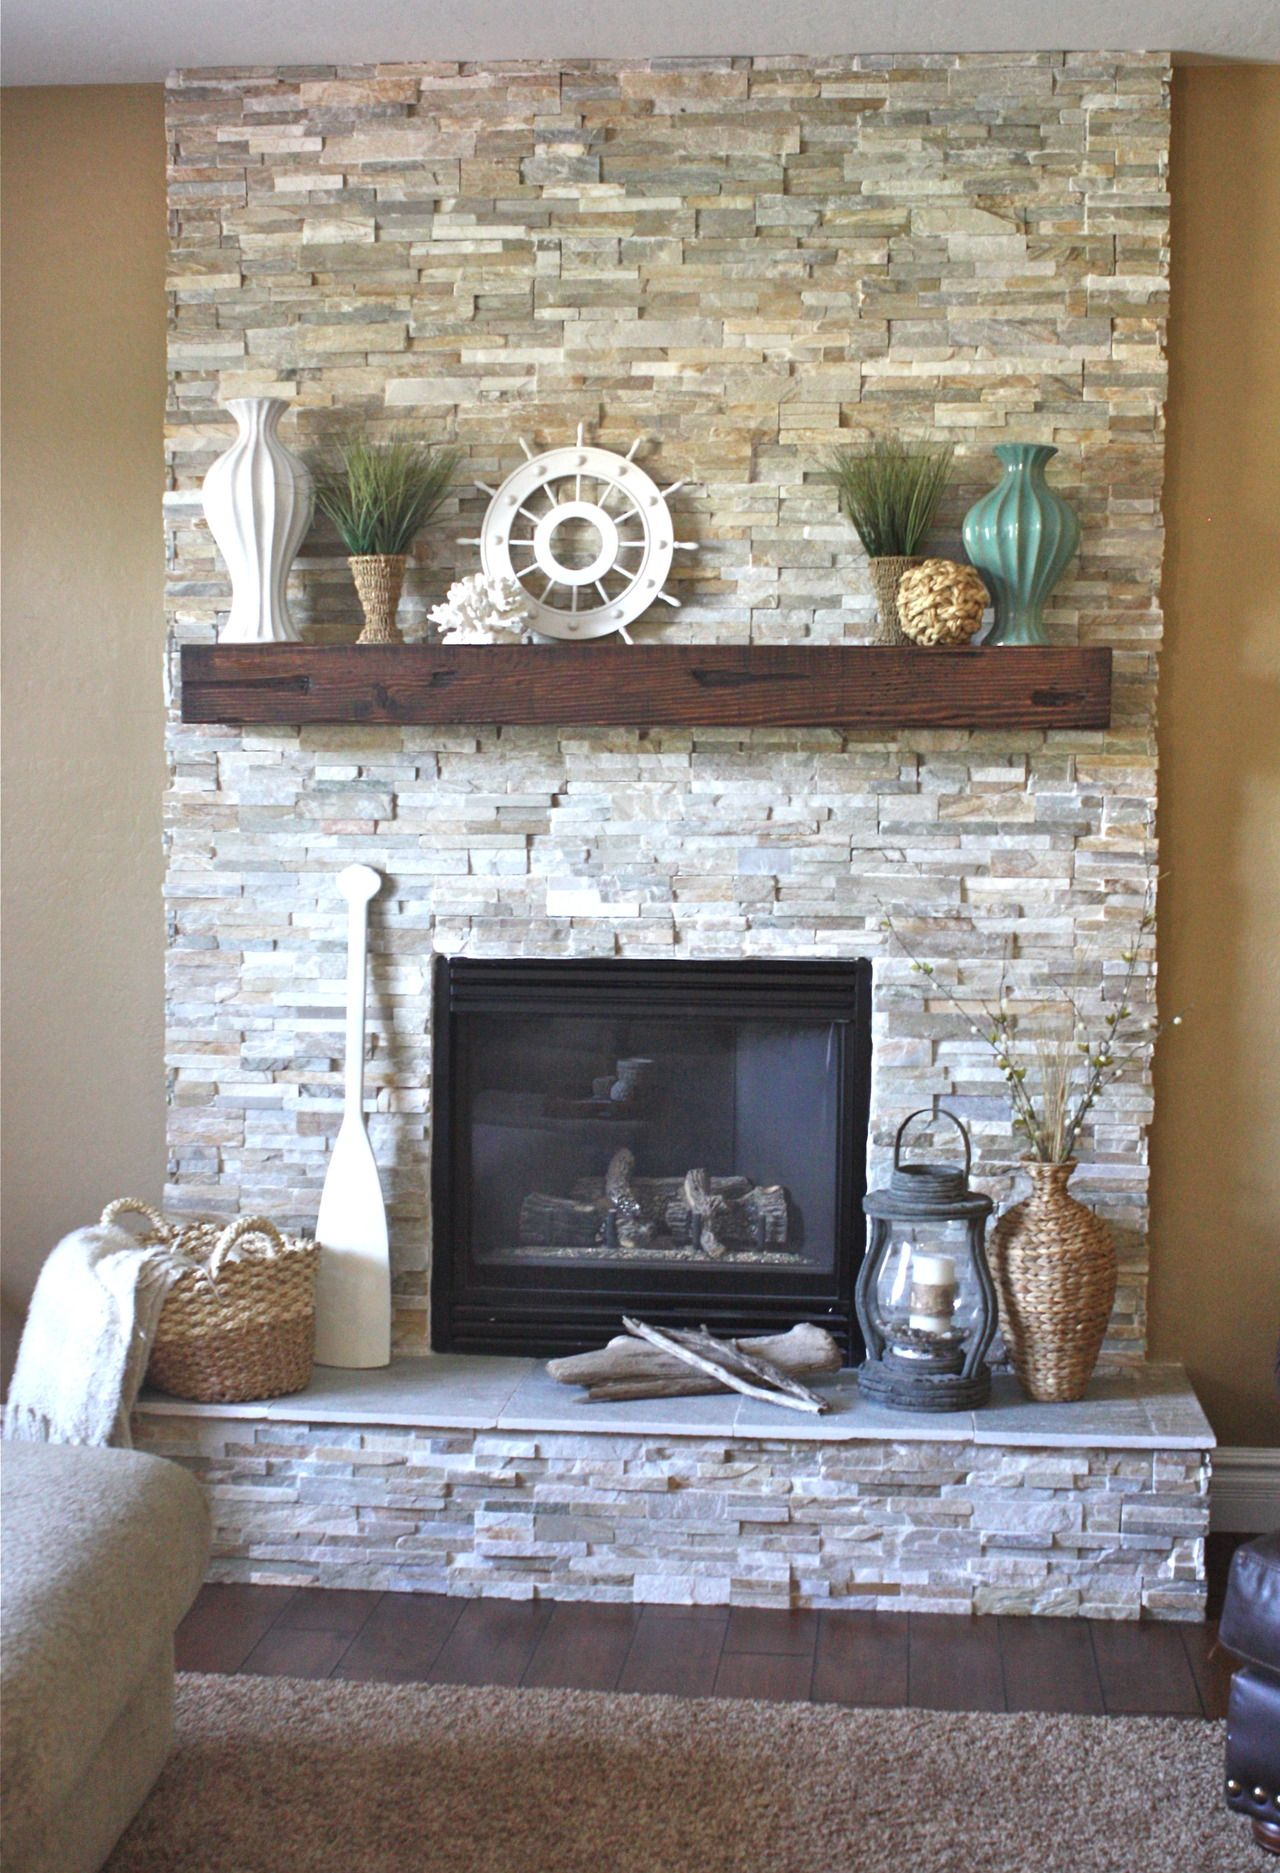 ny home cookwithalocal how in stove long the a and your island to make of warmth intended mantel fireplace image for beach mantels